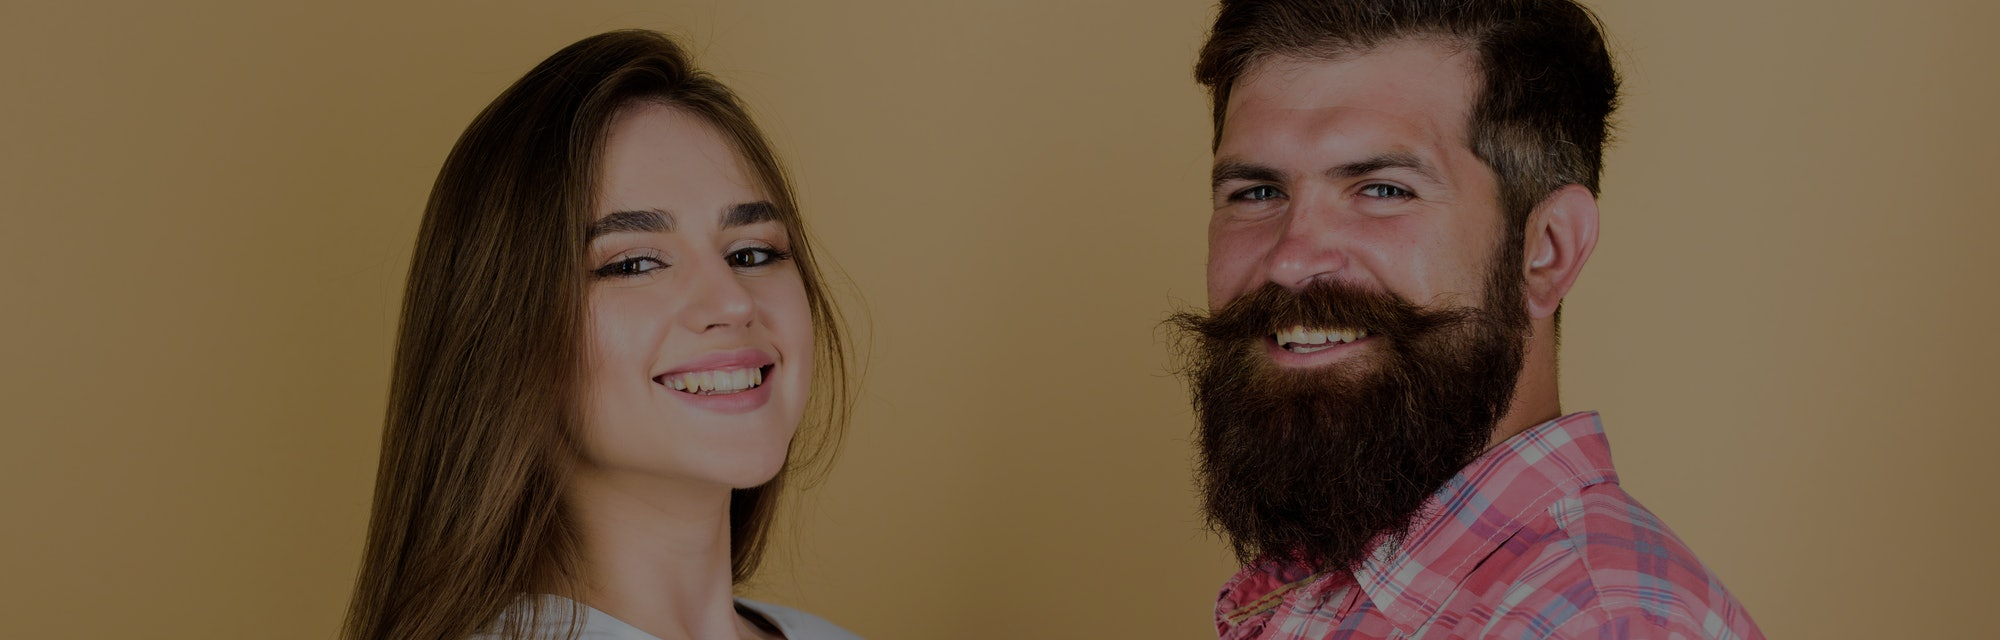 Life together. happy couple. couple in love. bearded man hipster with girl. hairdresser and barber concept. male and female fashion. valentines day. sexy woman and brutal guy with beard.